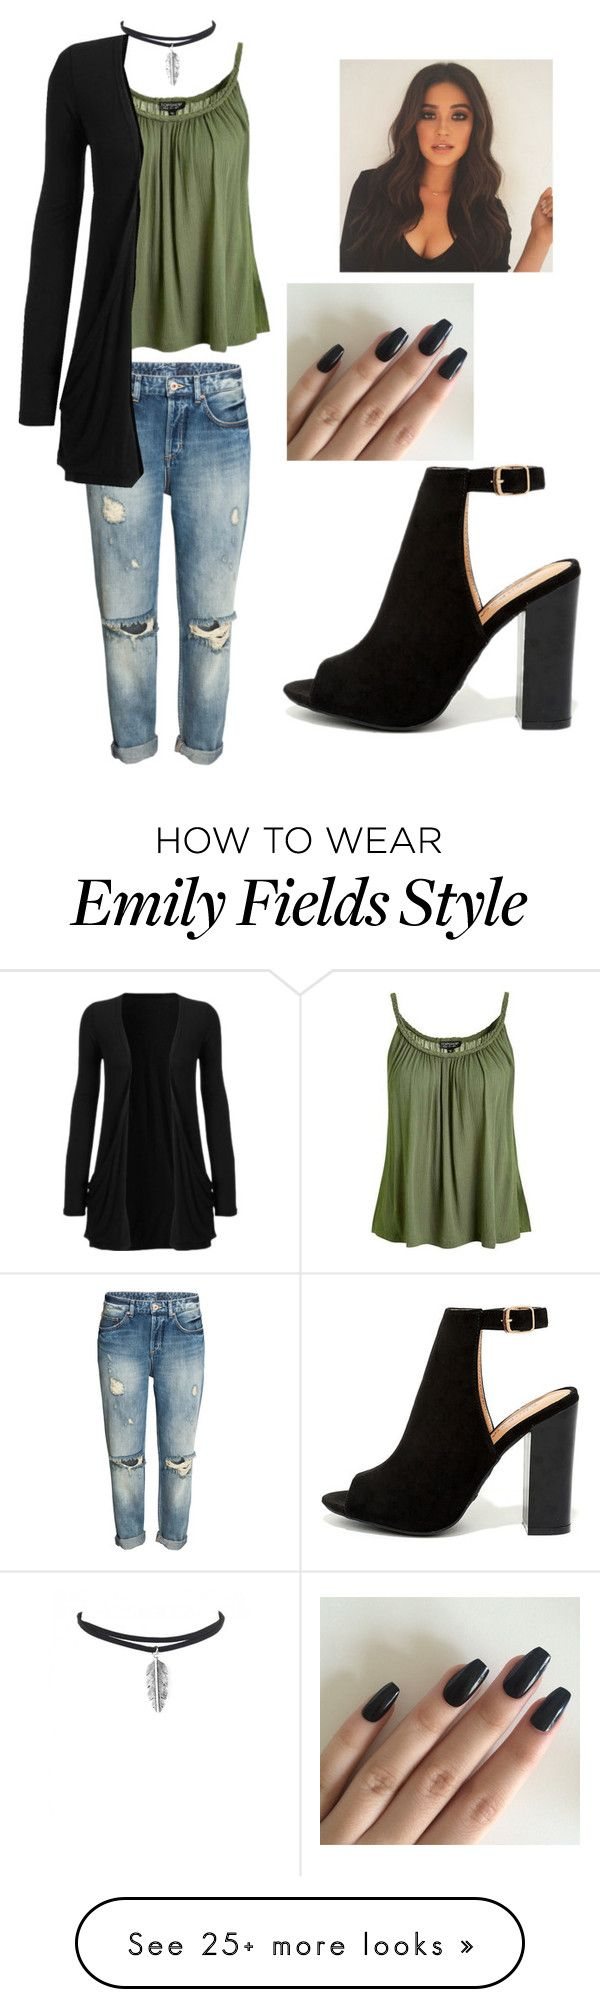 """Emily Fields!!"" by fashionguy98 on Polyvore featuring Bamboo and Topshop"